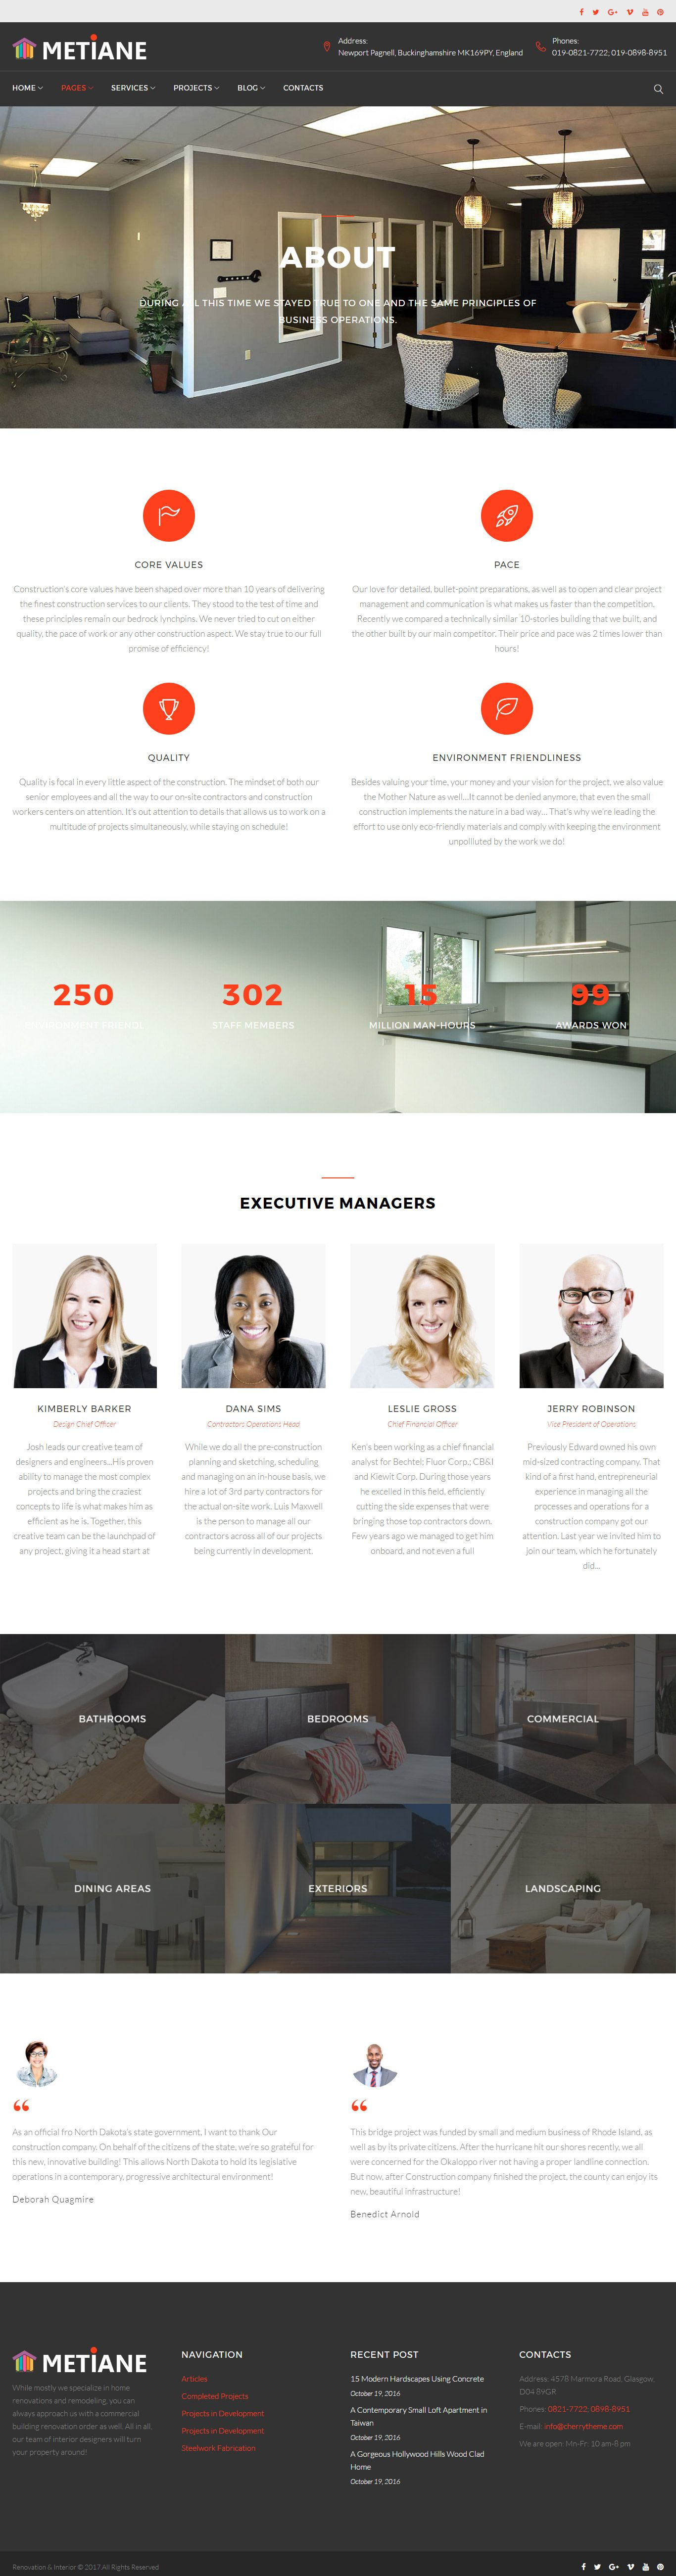 Metiane - Interior Design Wordpress Theme Screenshot 1